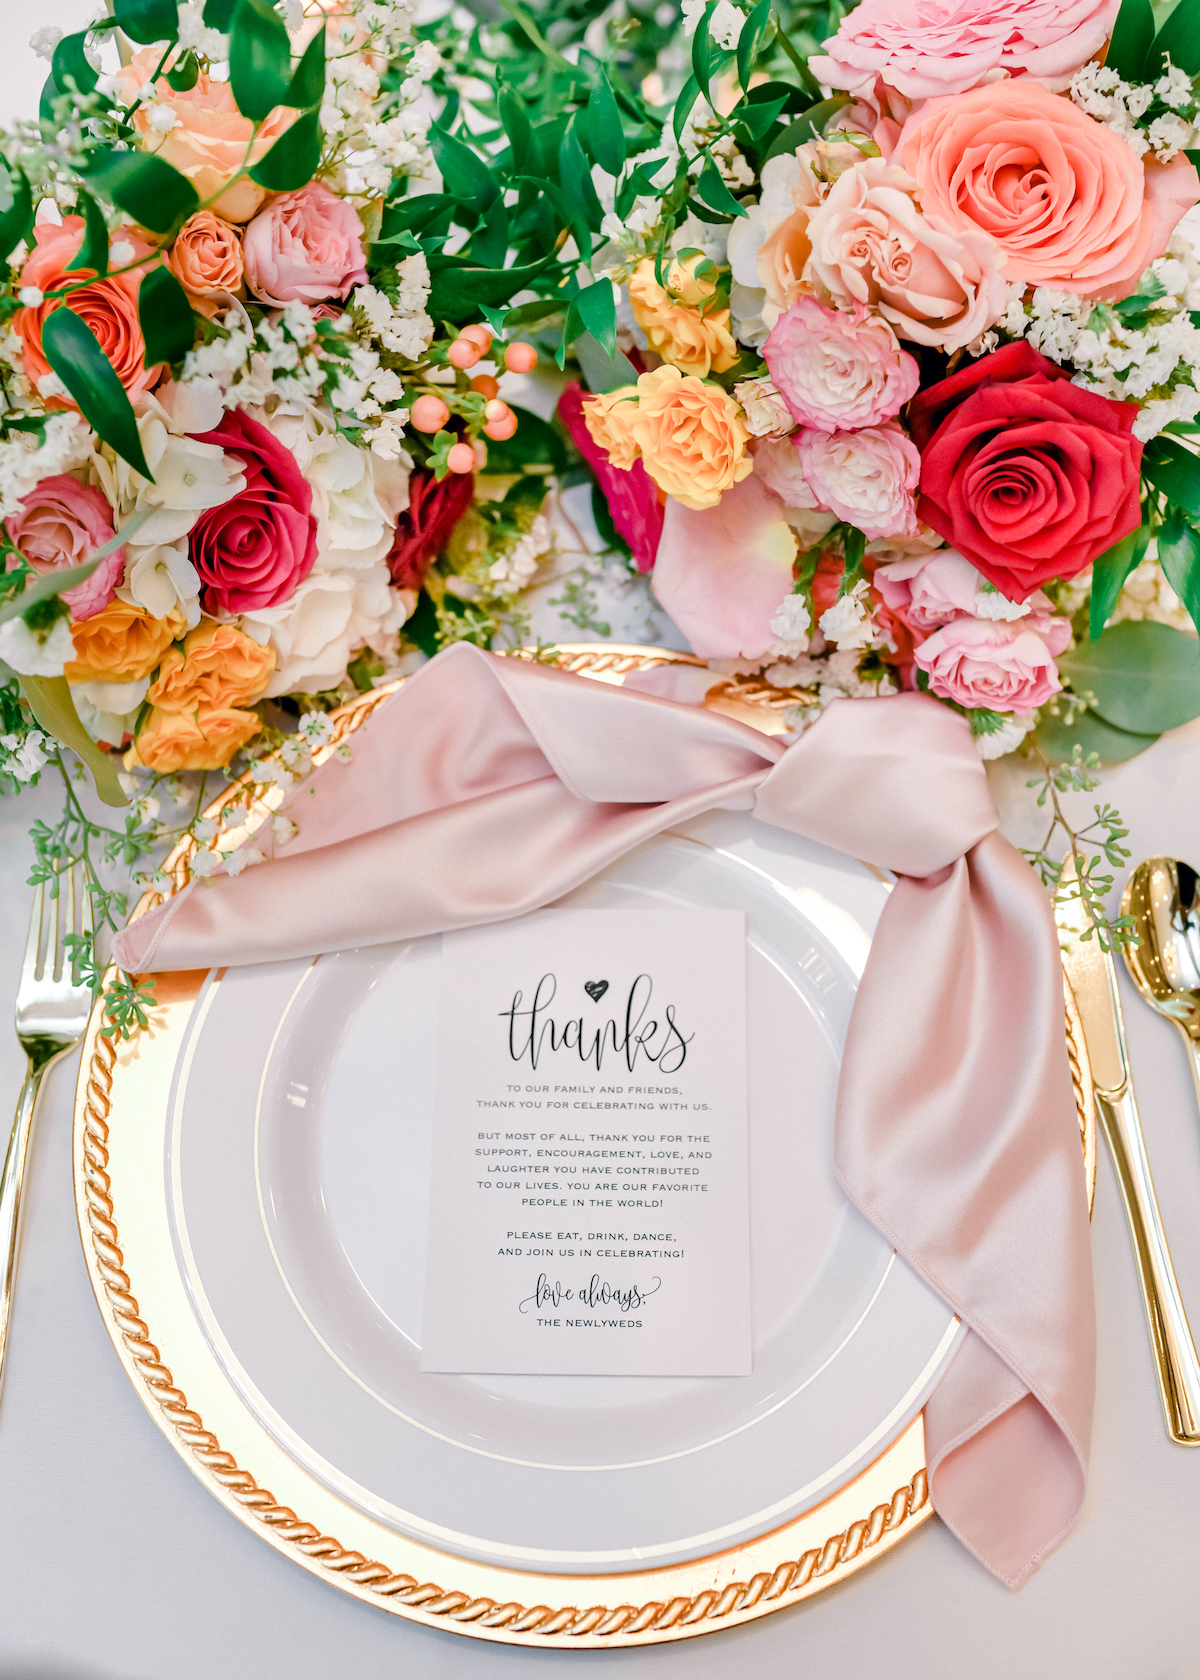 Tablescape details with stationery and floral